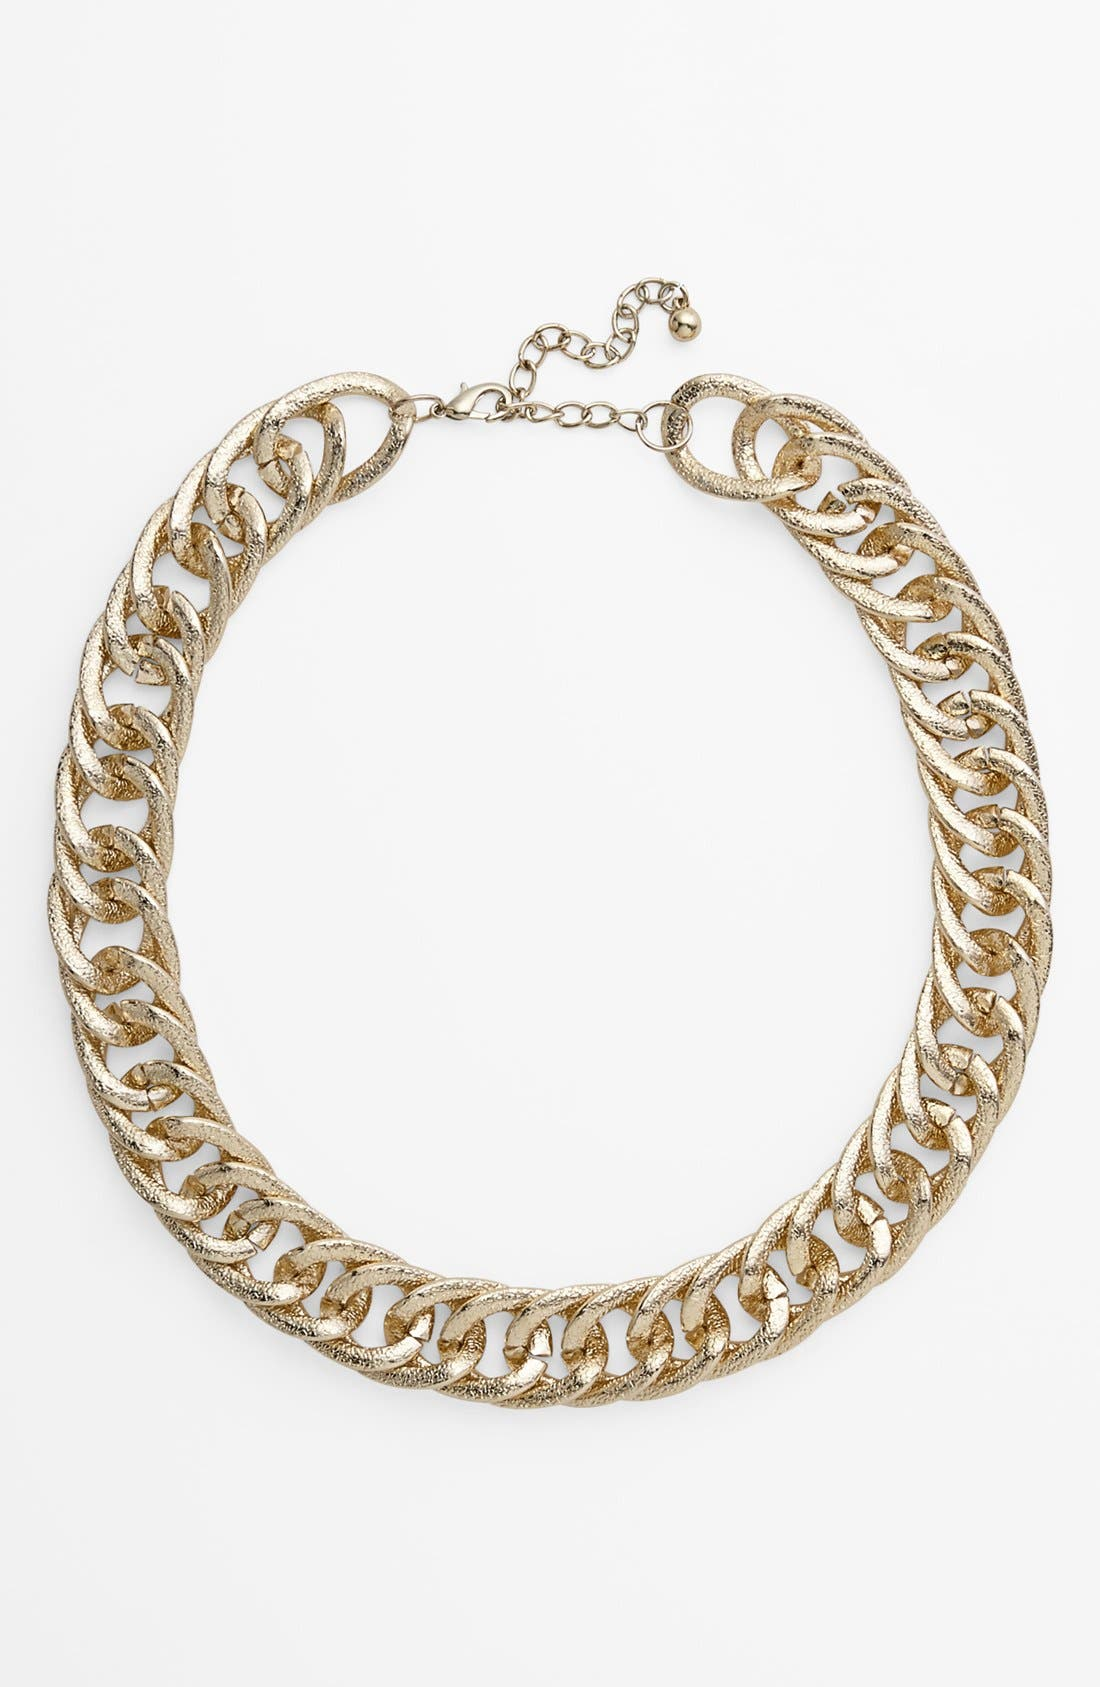 CAROLE, Textured Chunky Chain Necklace, Main thumbnail 1, color, 710